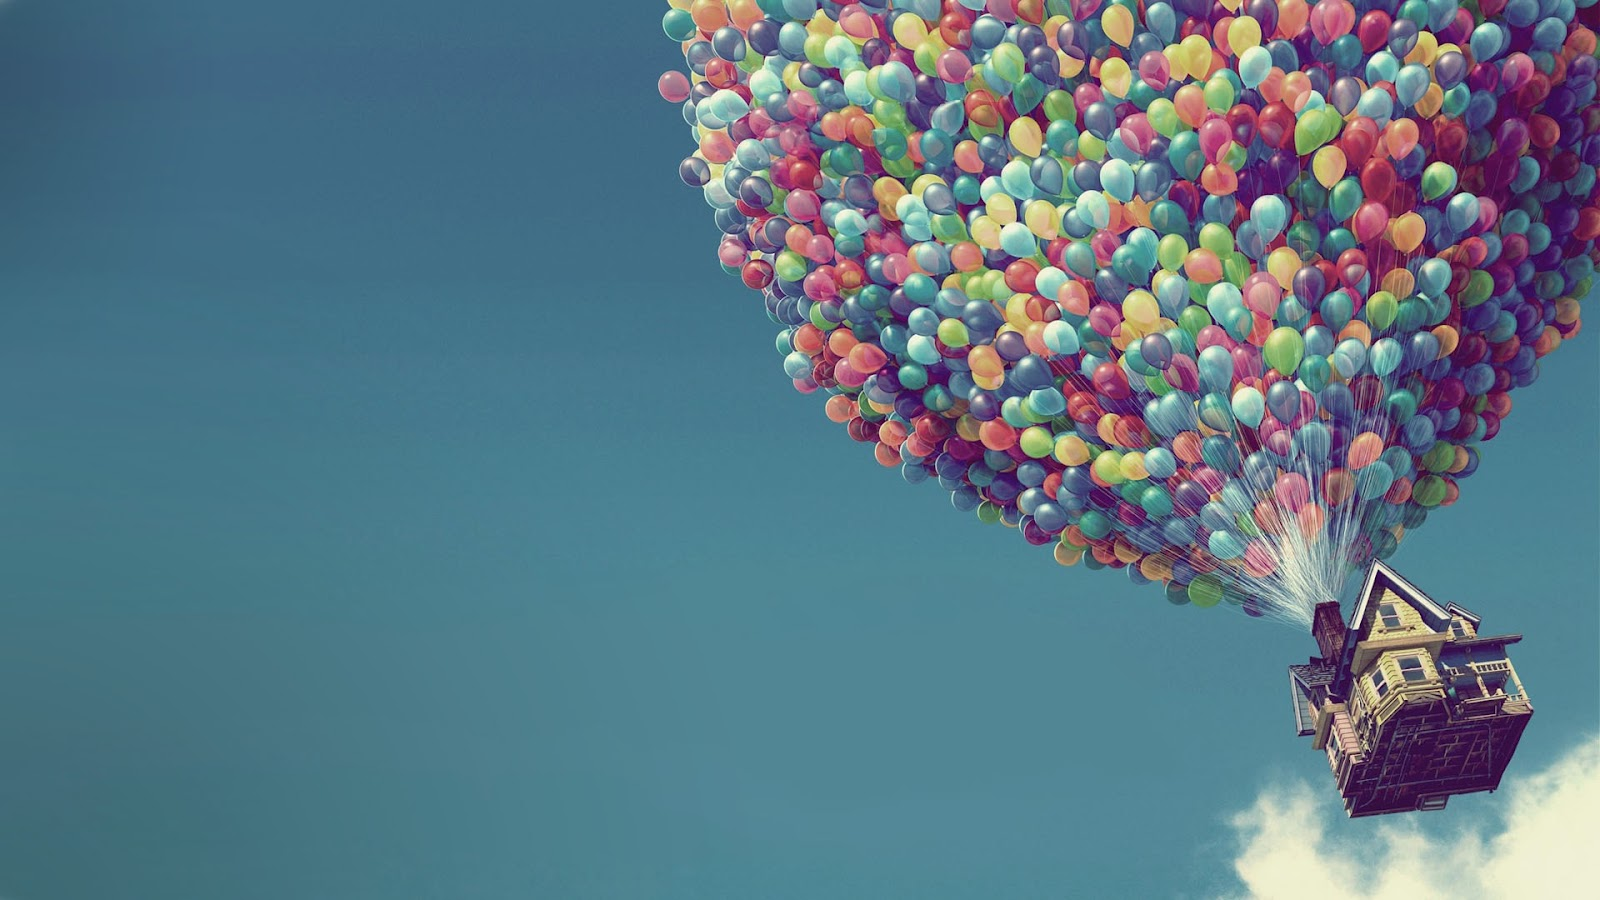 http://3.bp.blogspot.com/-fHS4E-AmJDA/UFL3xA9fWSI/AAAAAAAABF0/7nmzFnLEp0c/s1600/UP%21-balloons-and-the-house-in-the-sky.jpg